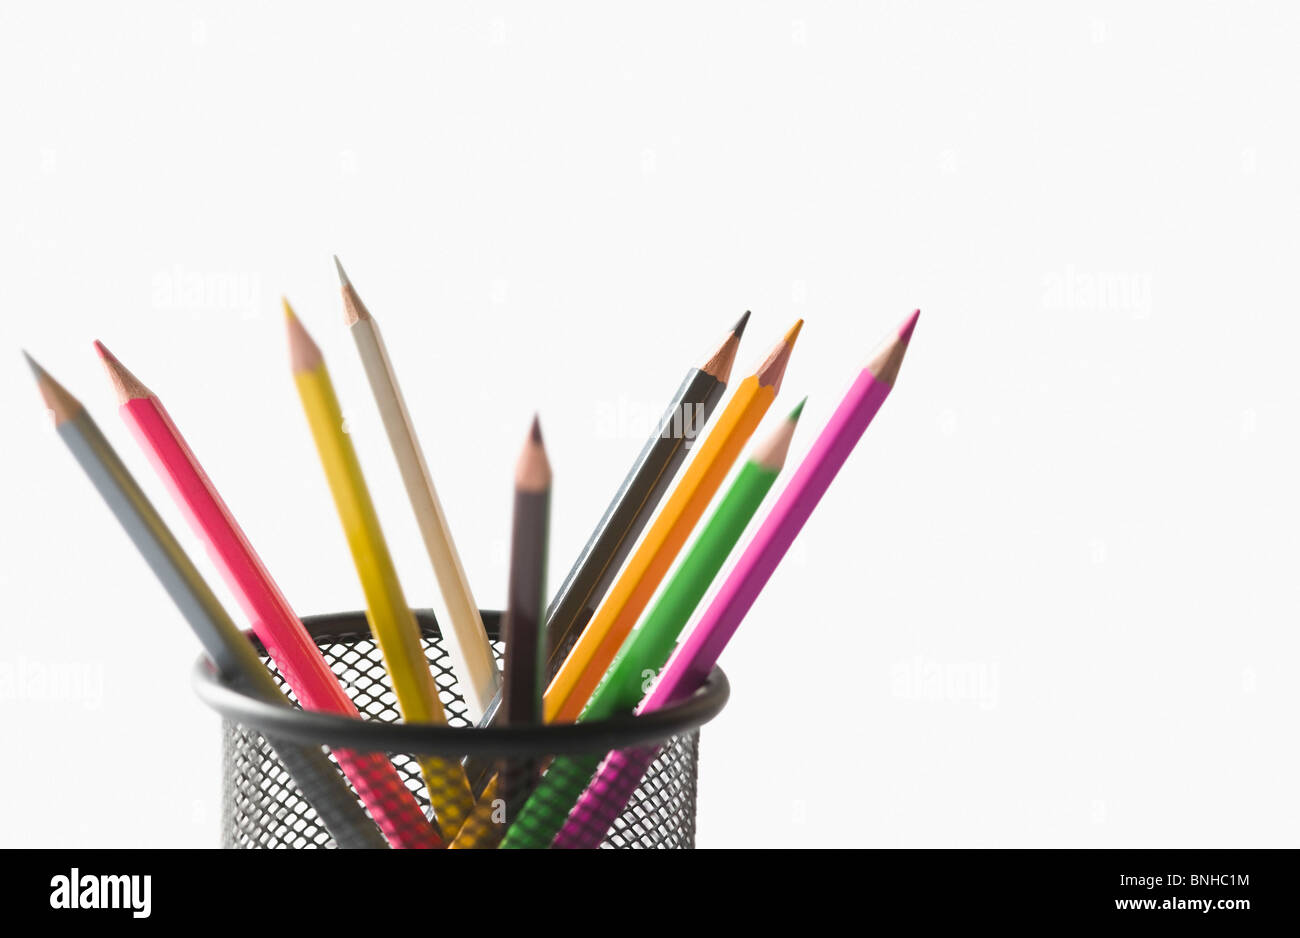 Close-up of colored pencils in a desk organizer - Stock Image